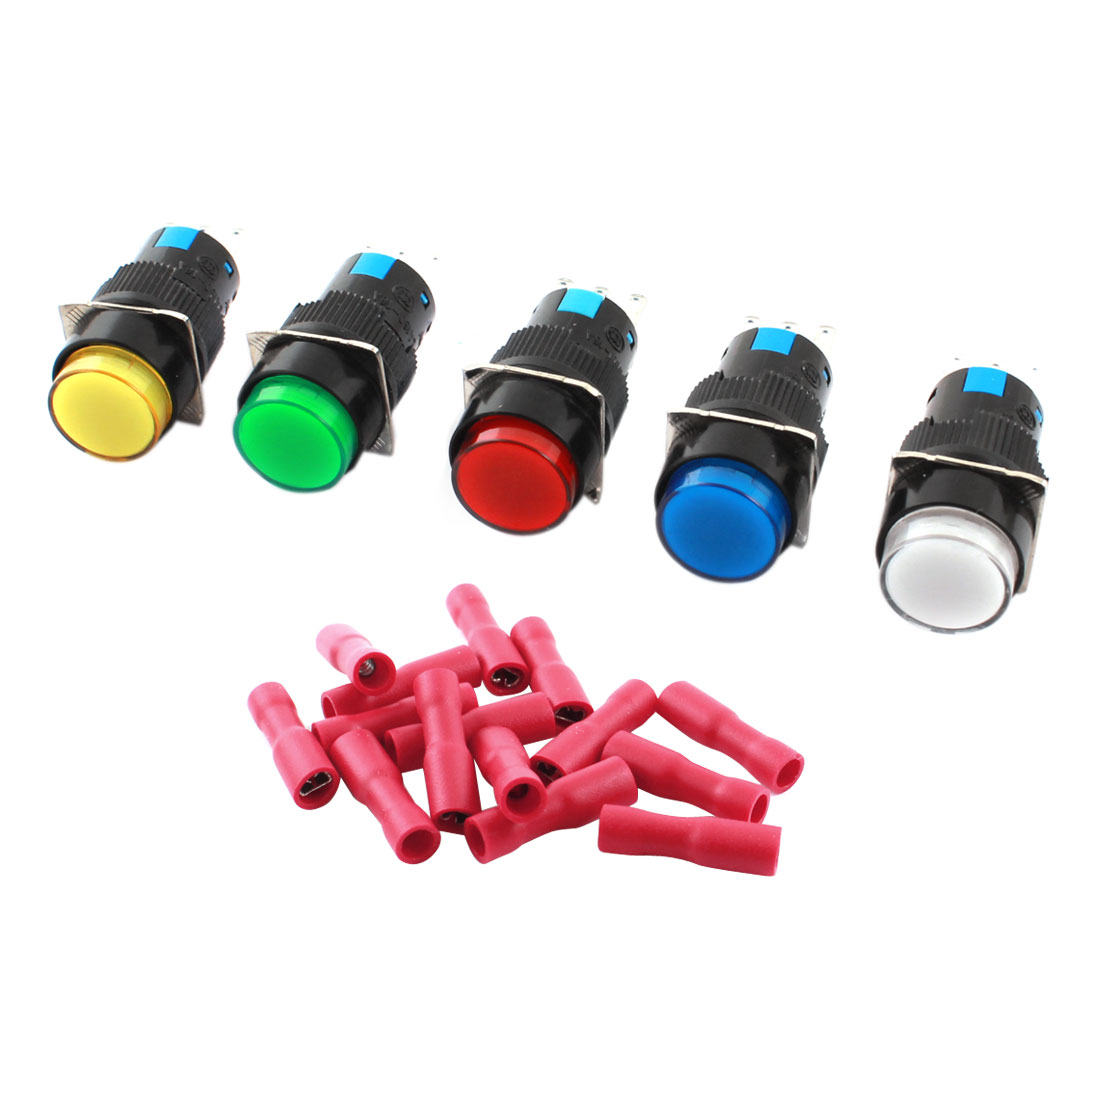 5Pcs AC 250V 5A Assorted Color Button 3Pins 16mm Threaded Panel Mounted SPDT Momentary Round Pushbutton Switch + 15pcs Crimp Terminals